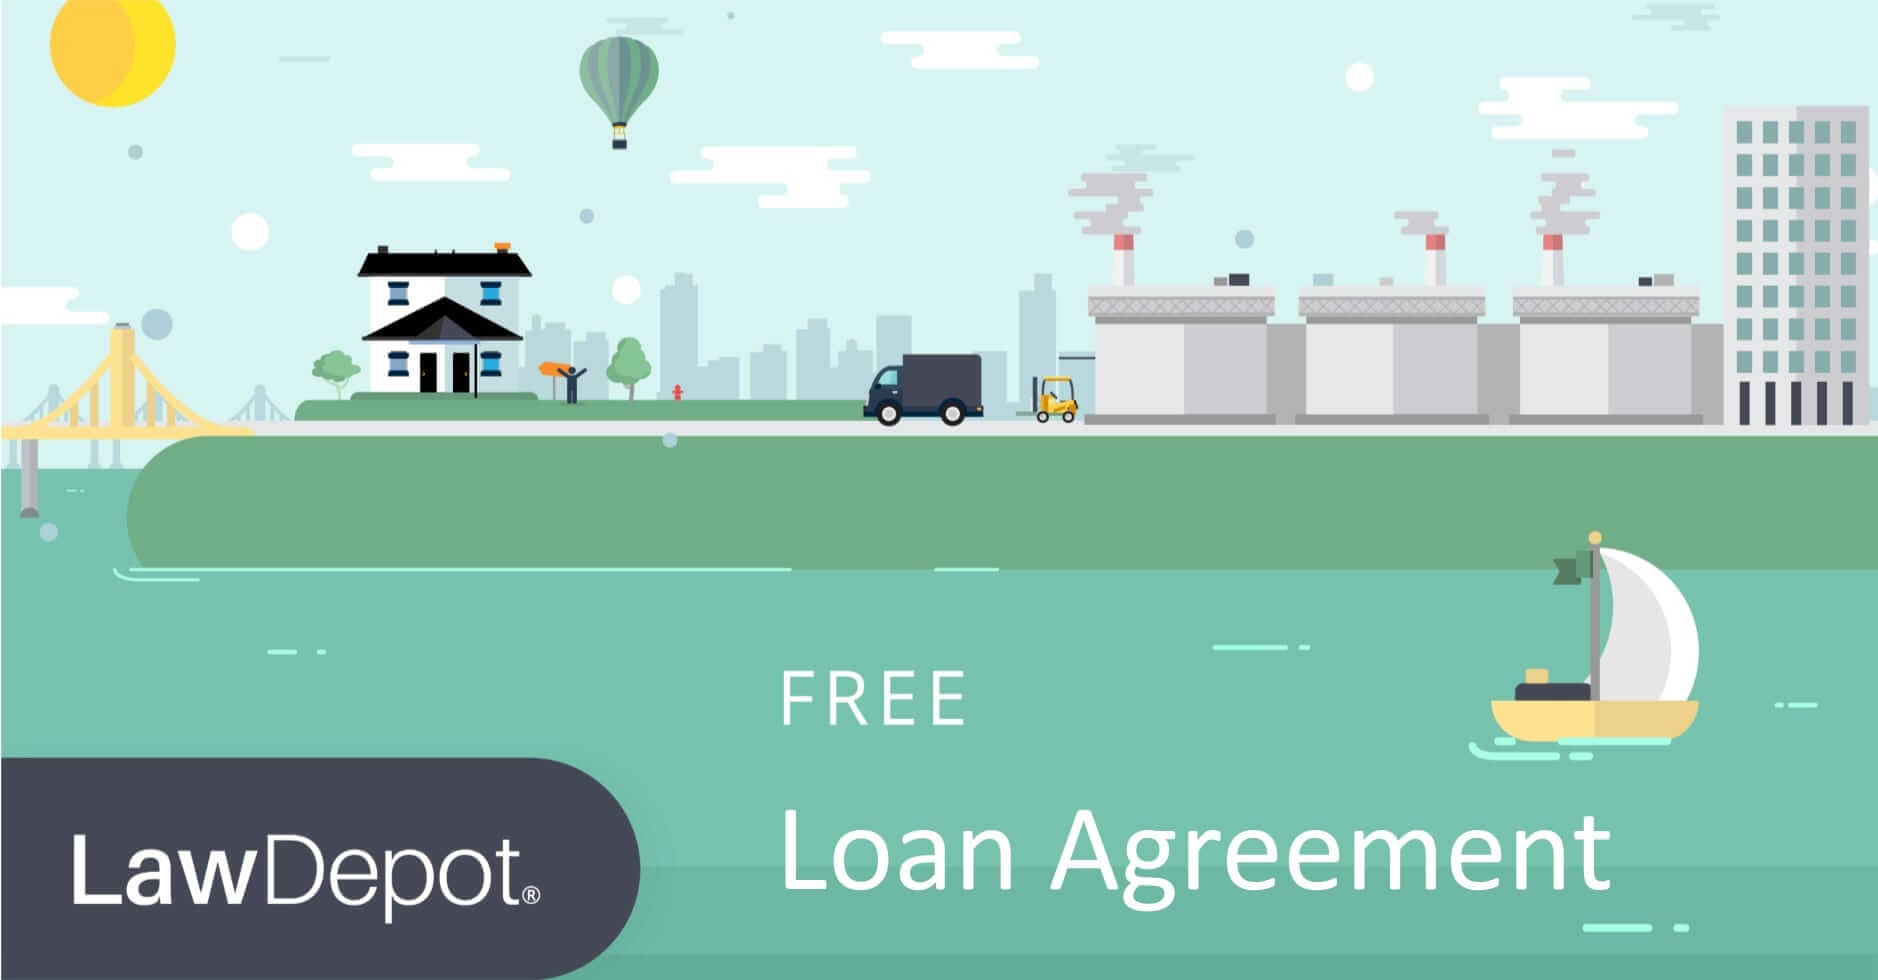 LawDepot  Free Loan Agreement